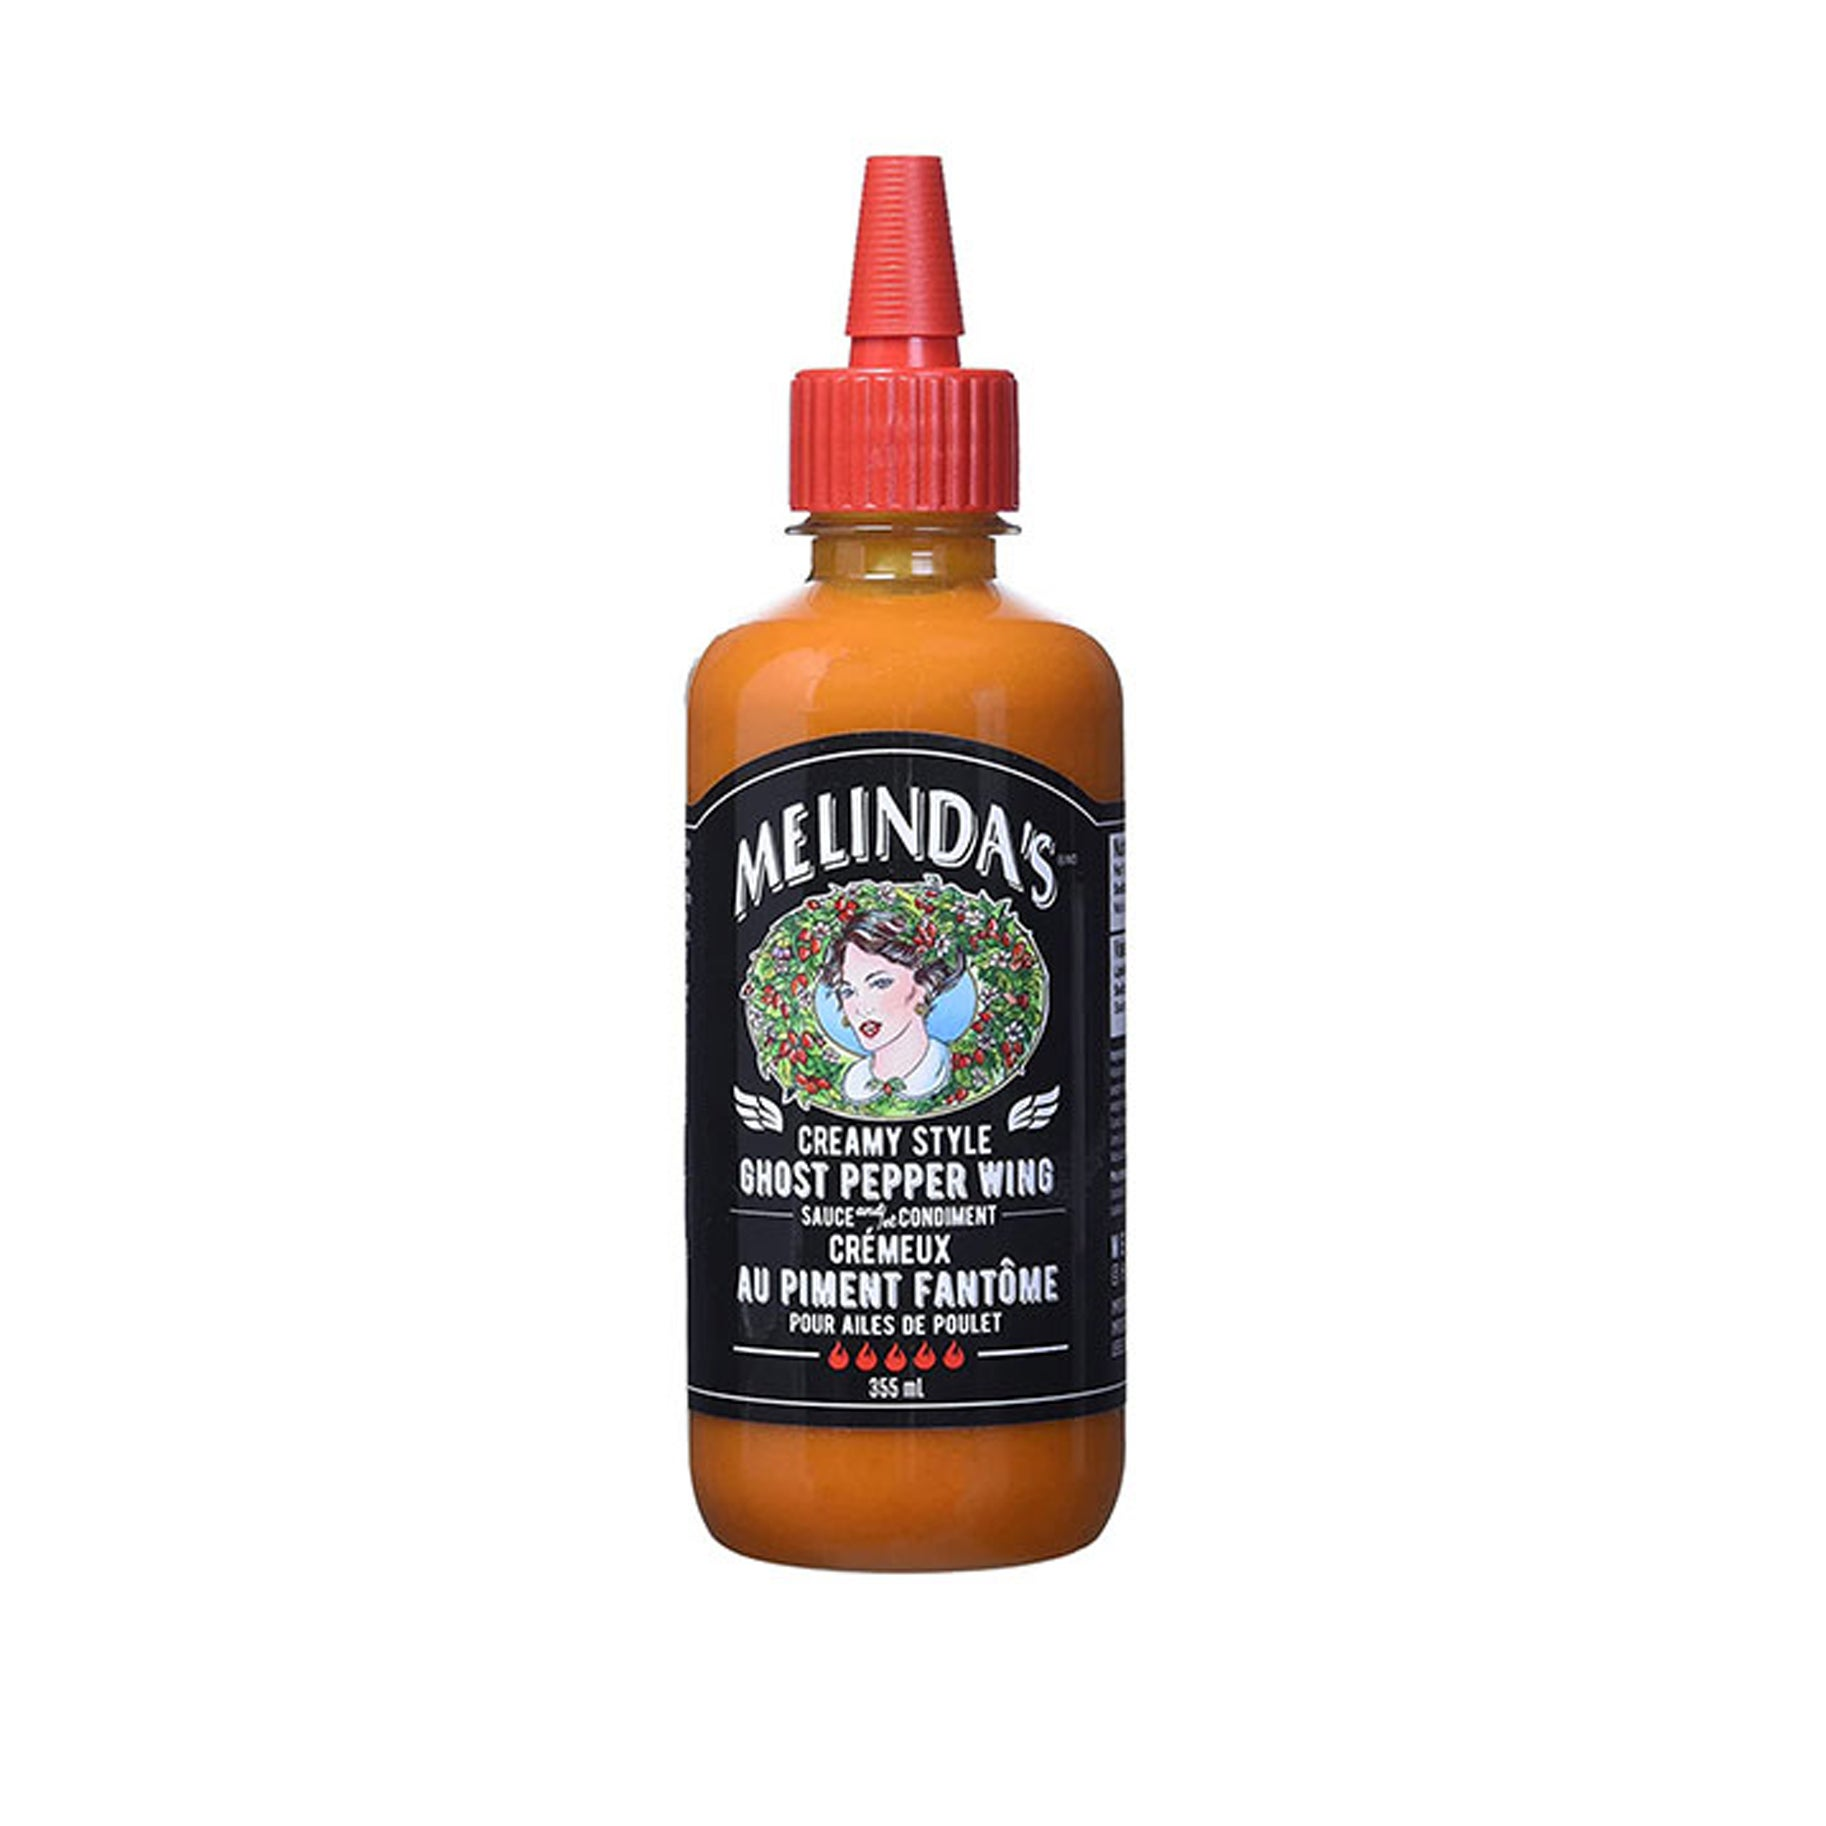 The Best Hot Sauces Option: Melinda's Ghost Pepper Wing Sauce